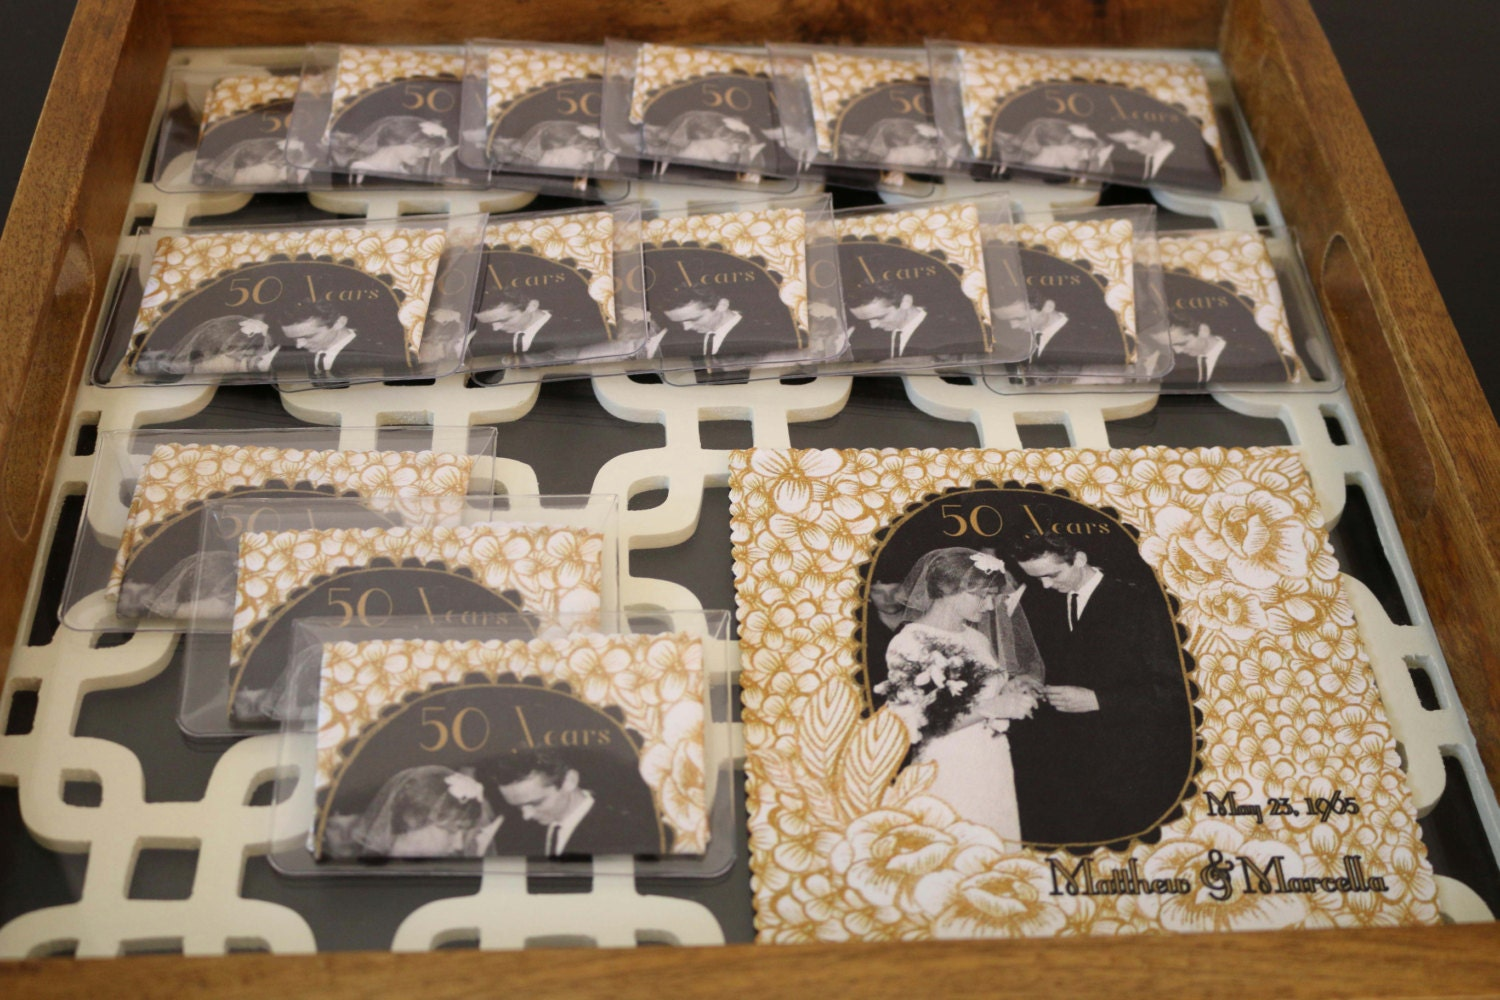 50th Wedding Anniversary Favors Microfiber Cloths In Clear